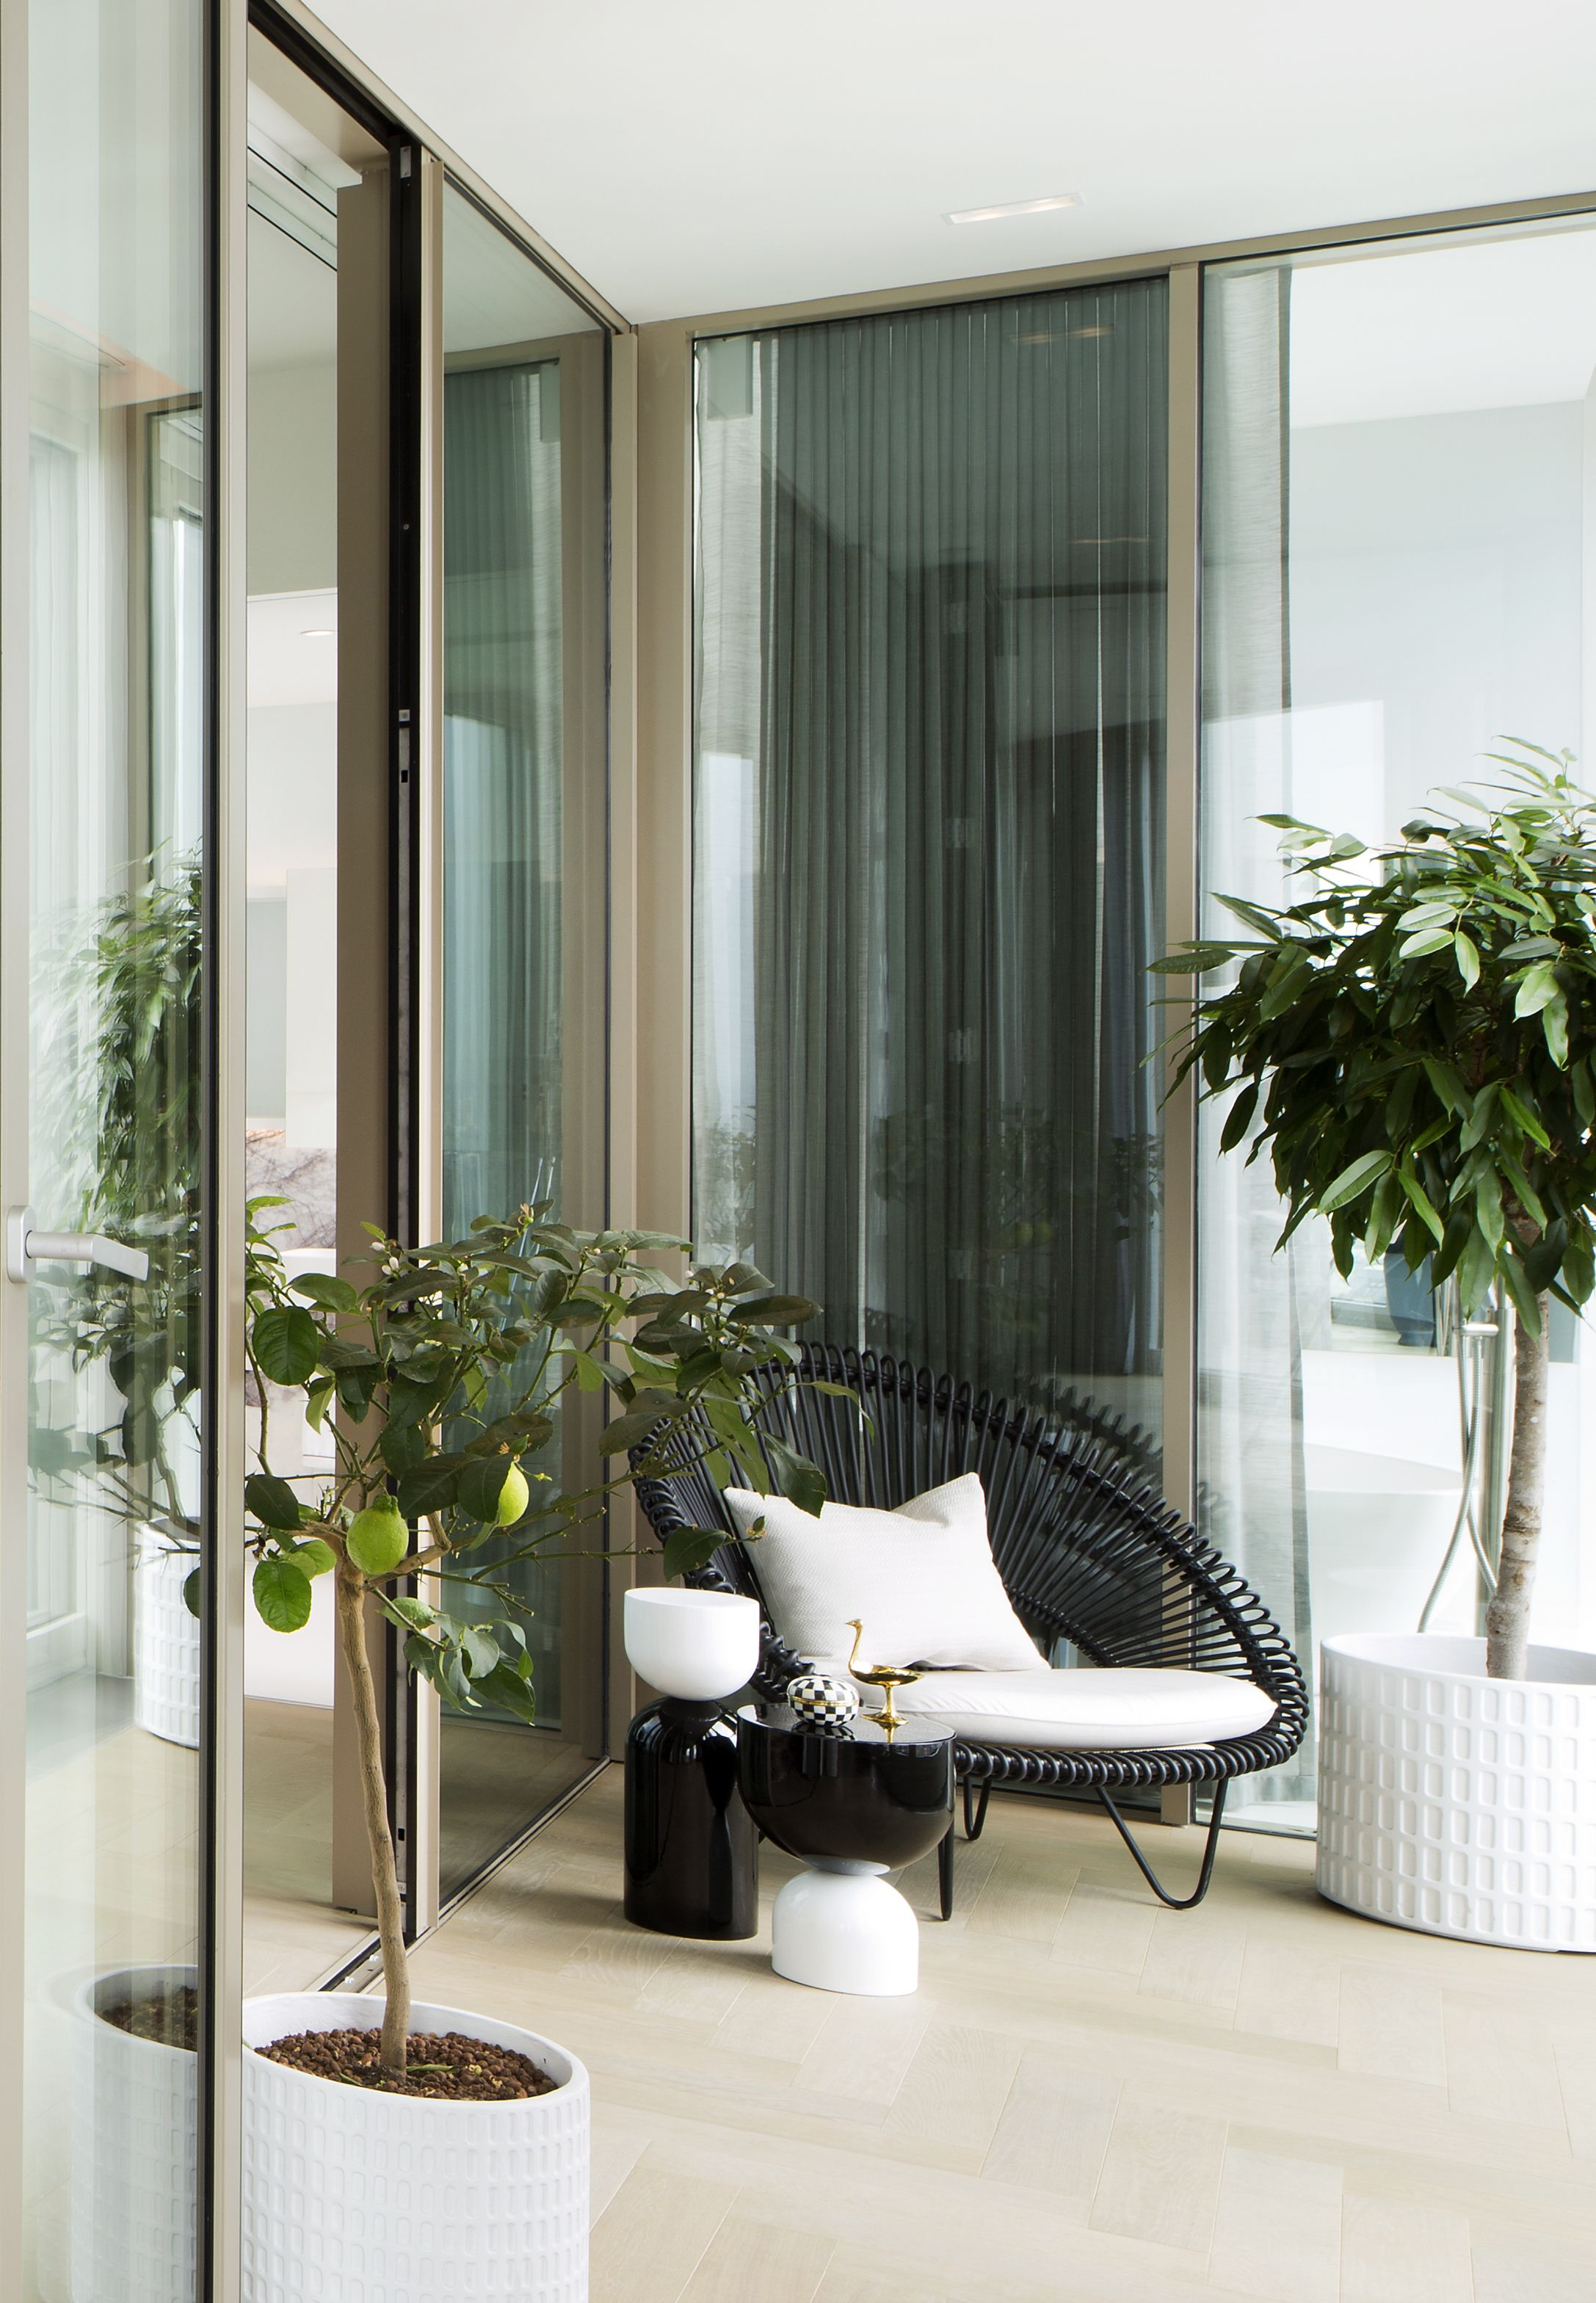 This winter garden occupies the 8th floor of a contemporary